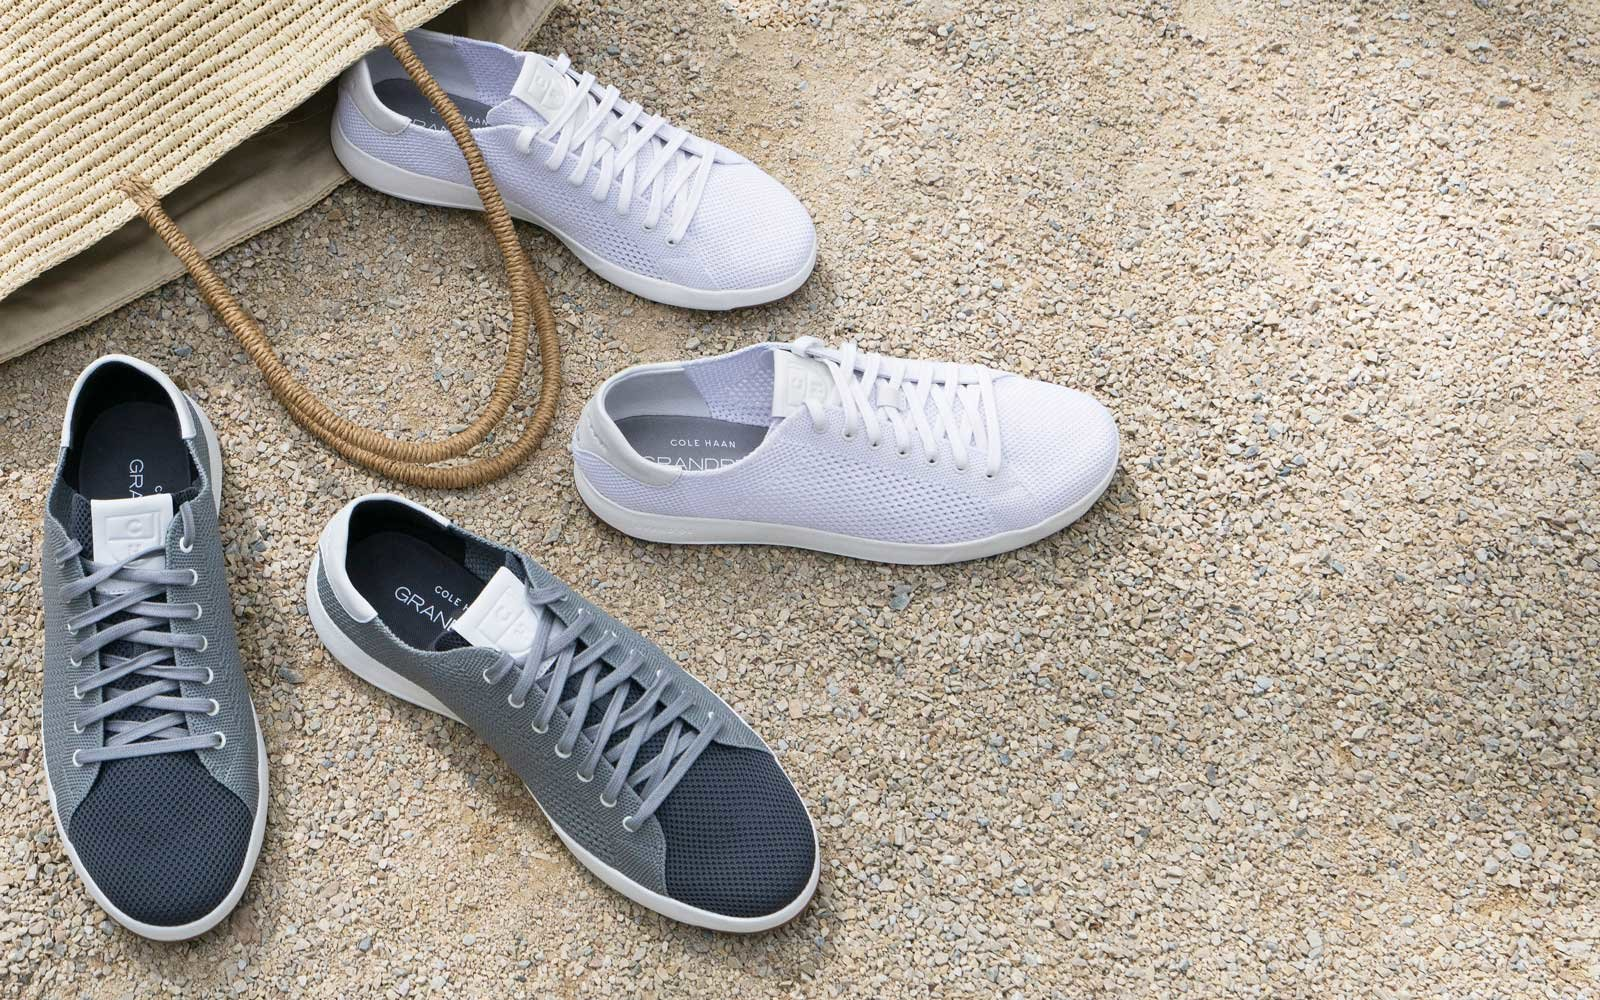 Cole Haan S New Knit Sneaker Is The Perfect Travel Shoe